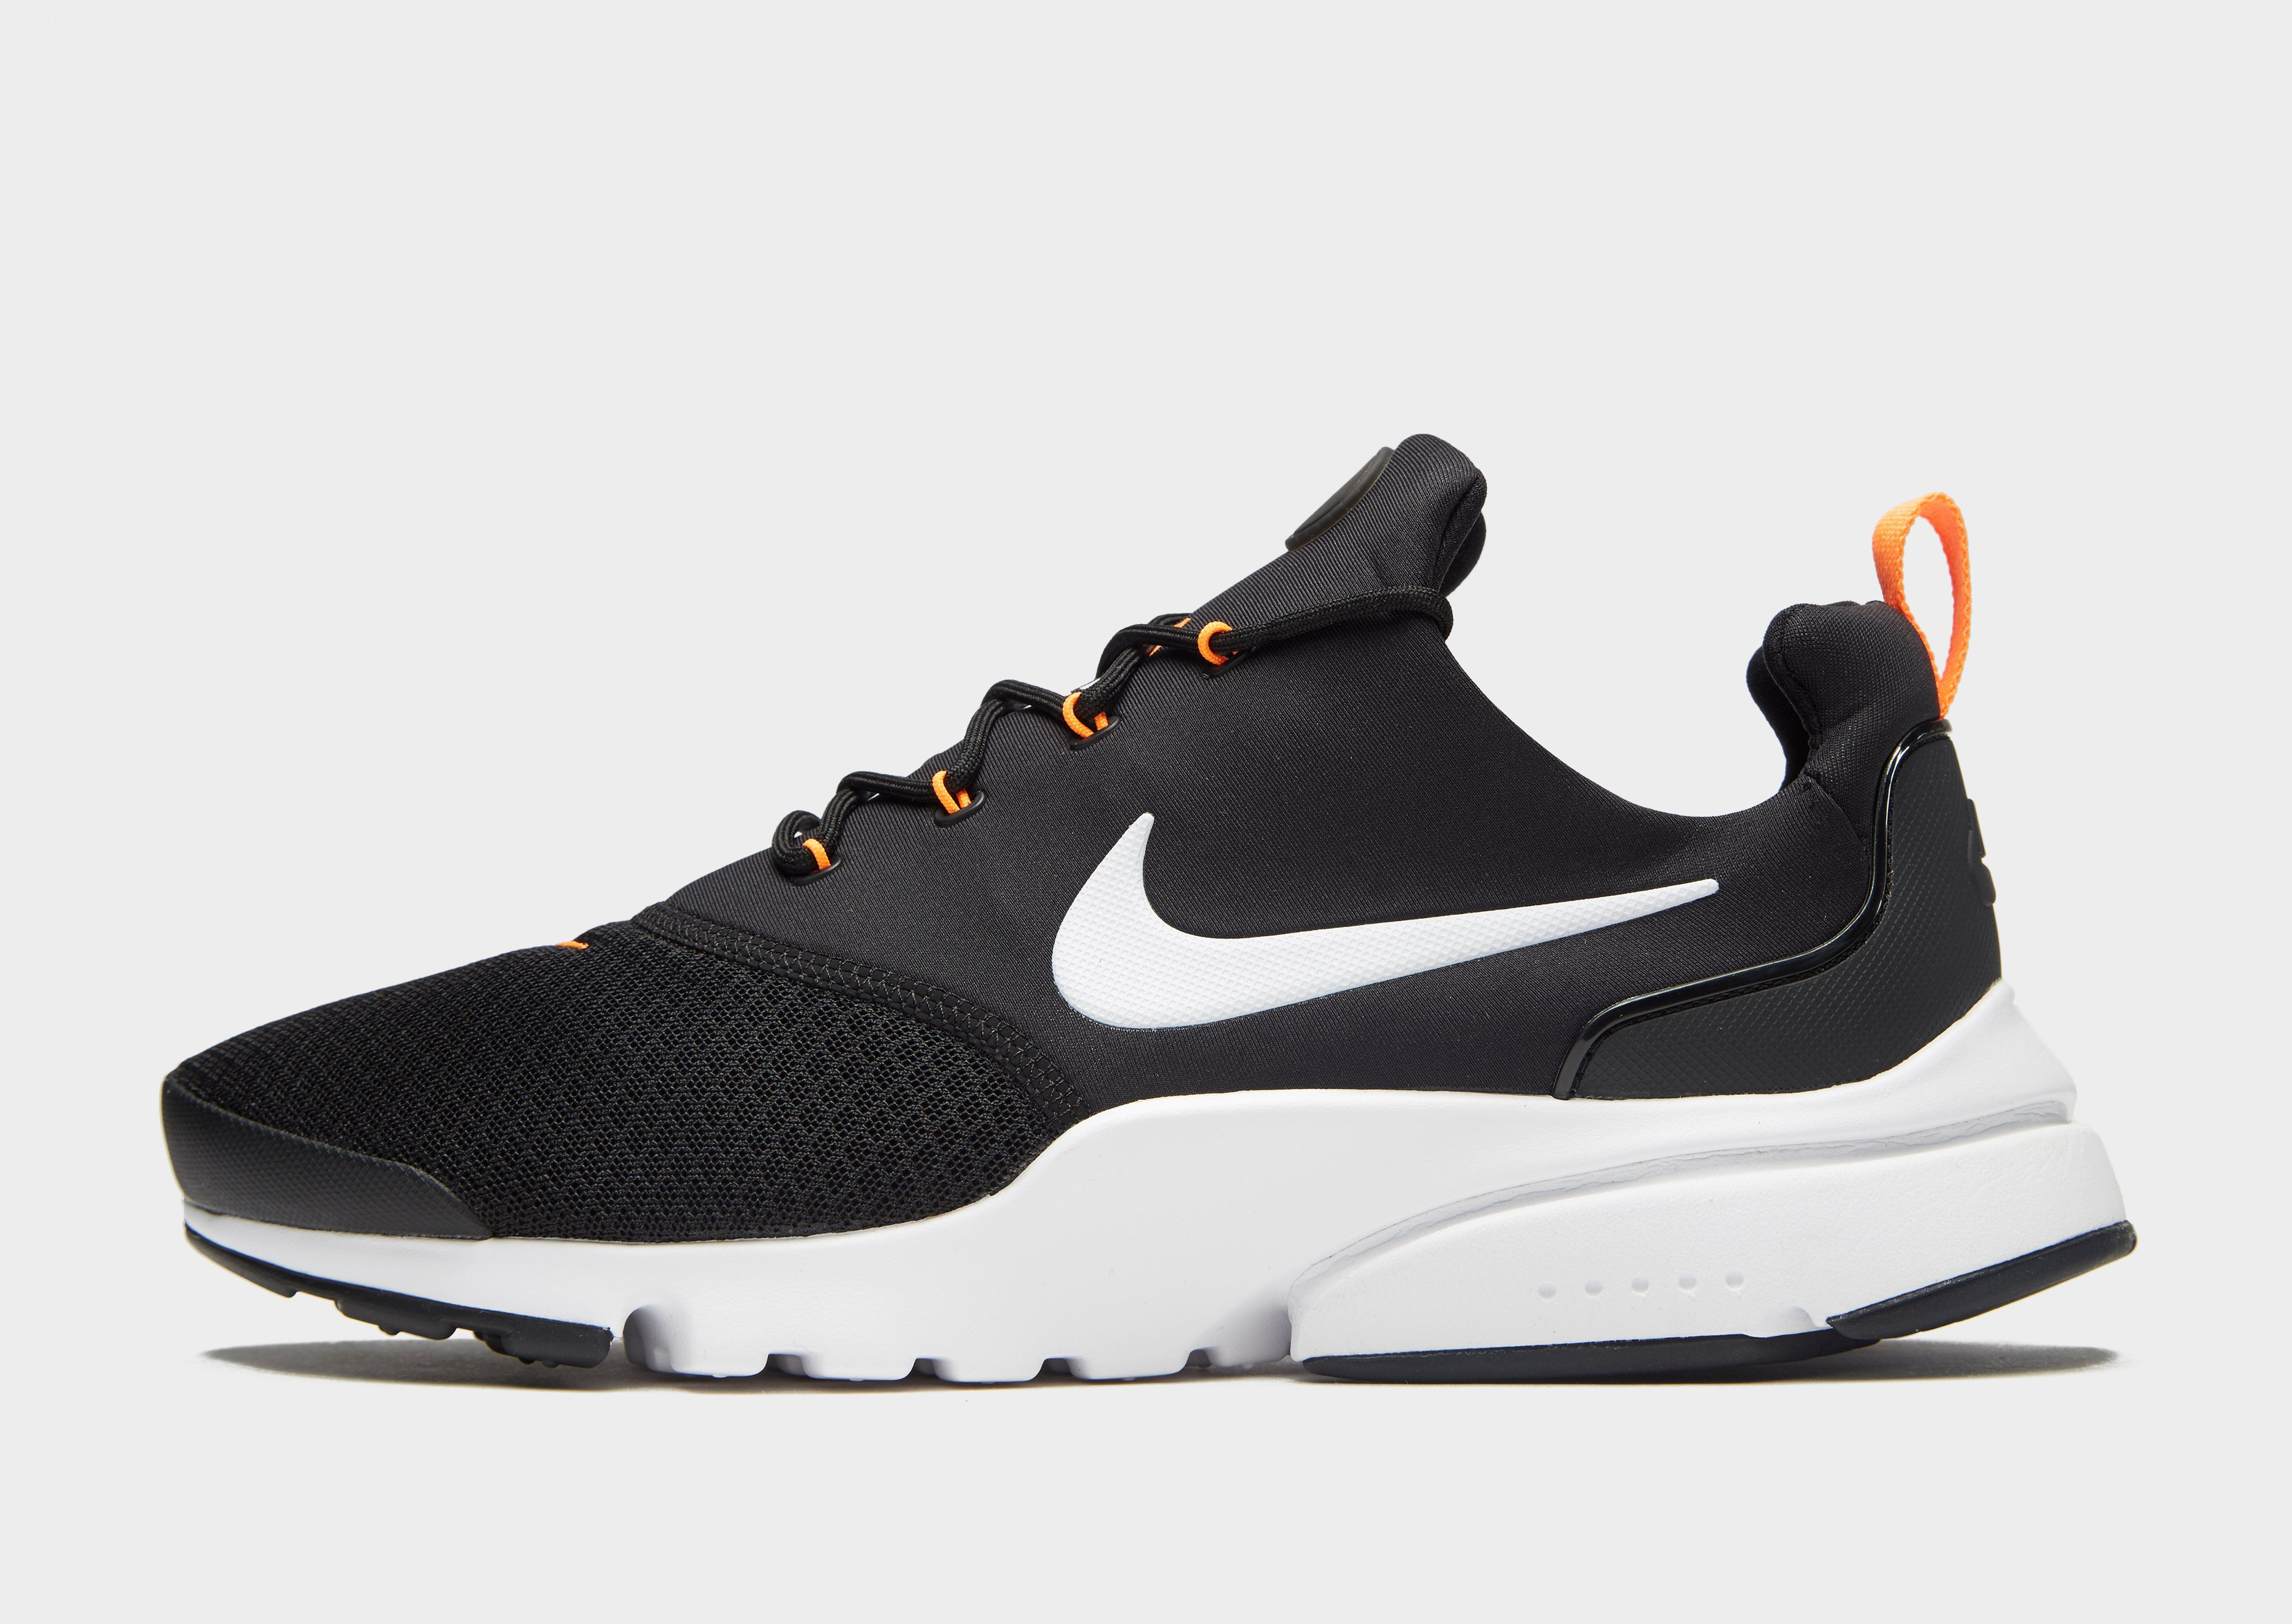 low cost 118f8 36028 NIKE Air Presto Fly Just Do It   JD Sports